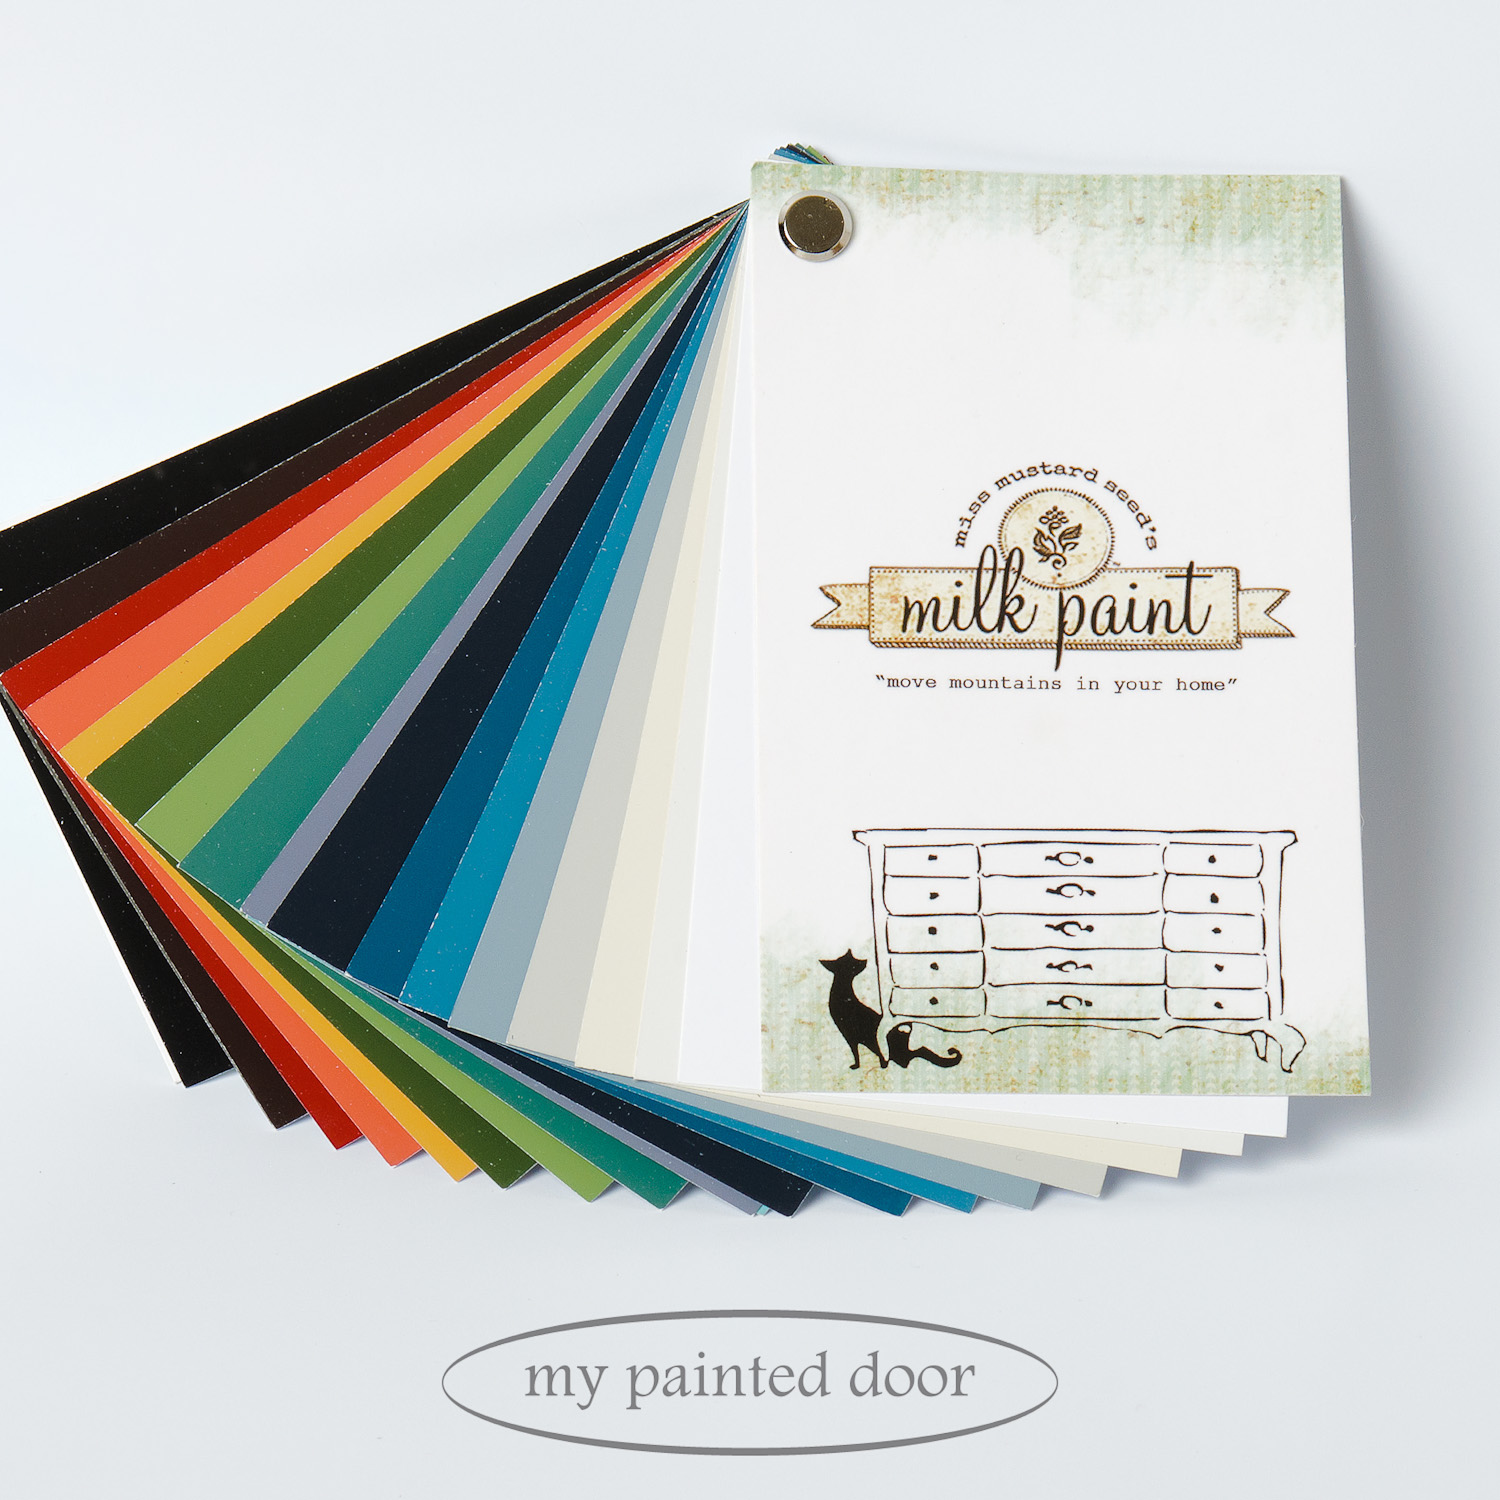 Miss Mustard Seed's colour fan deck - available at My Painted Door (.com)